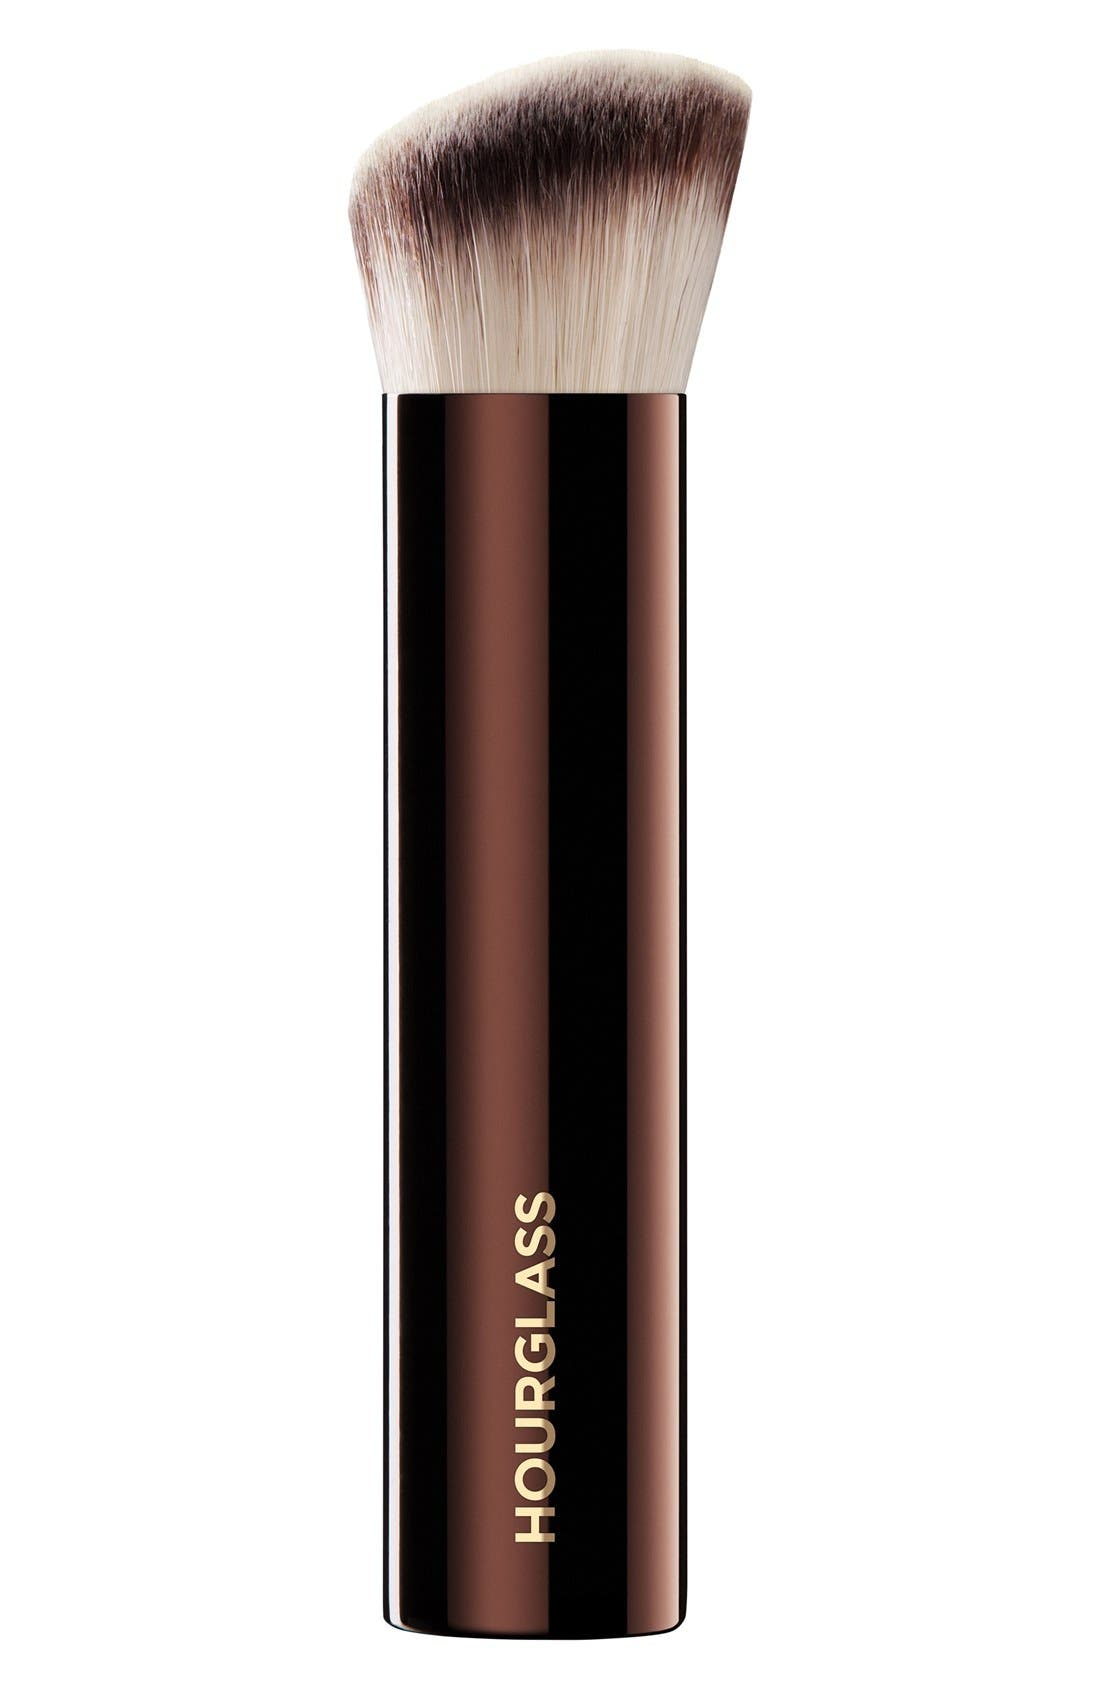 Vanish Seamless Finish Foundation Brush,                             Main thumbnail 1, color,                             NO COLOR